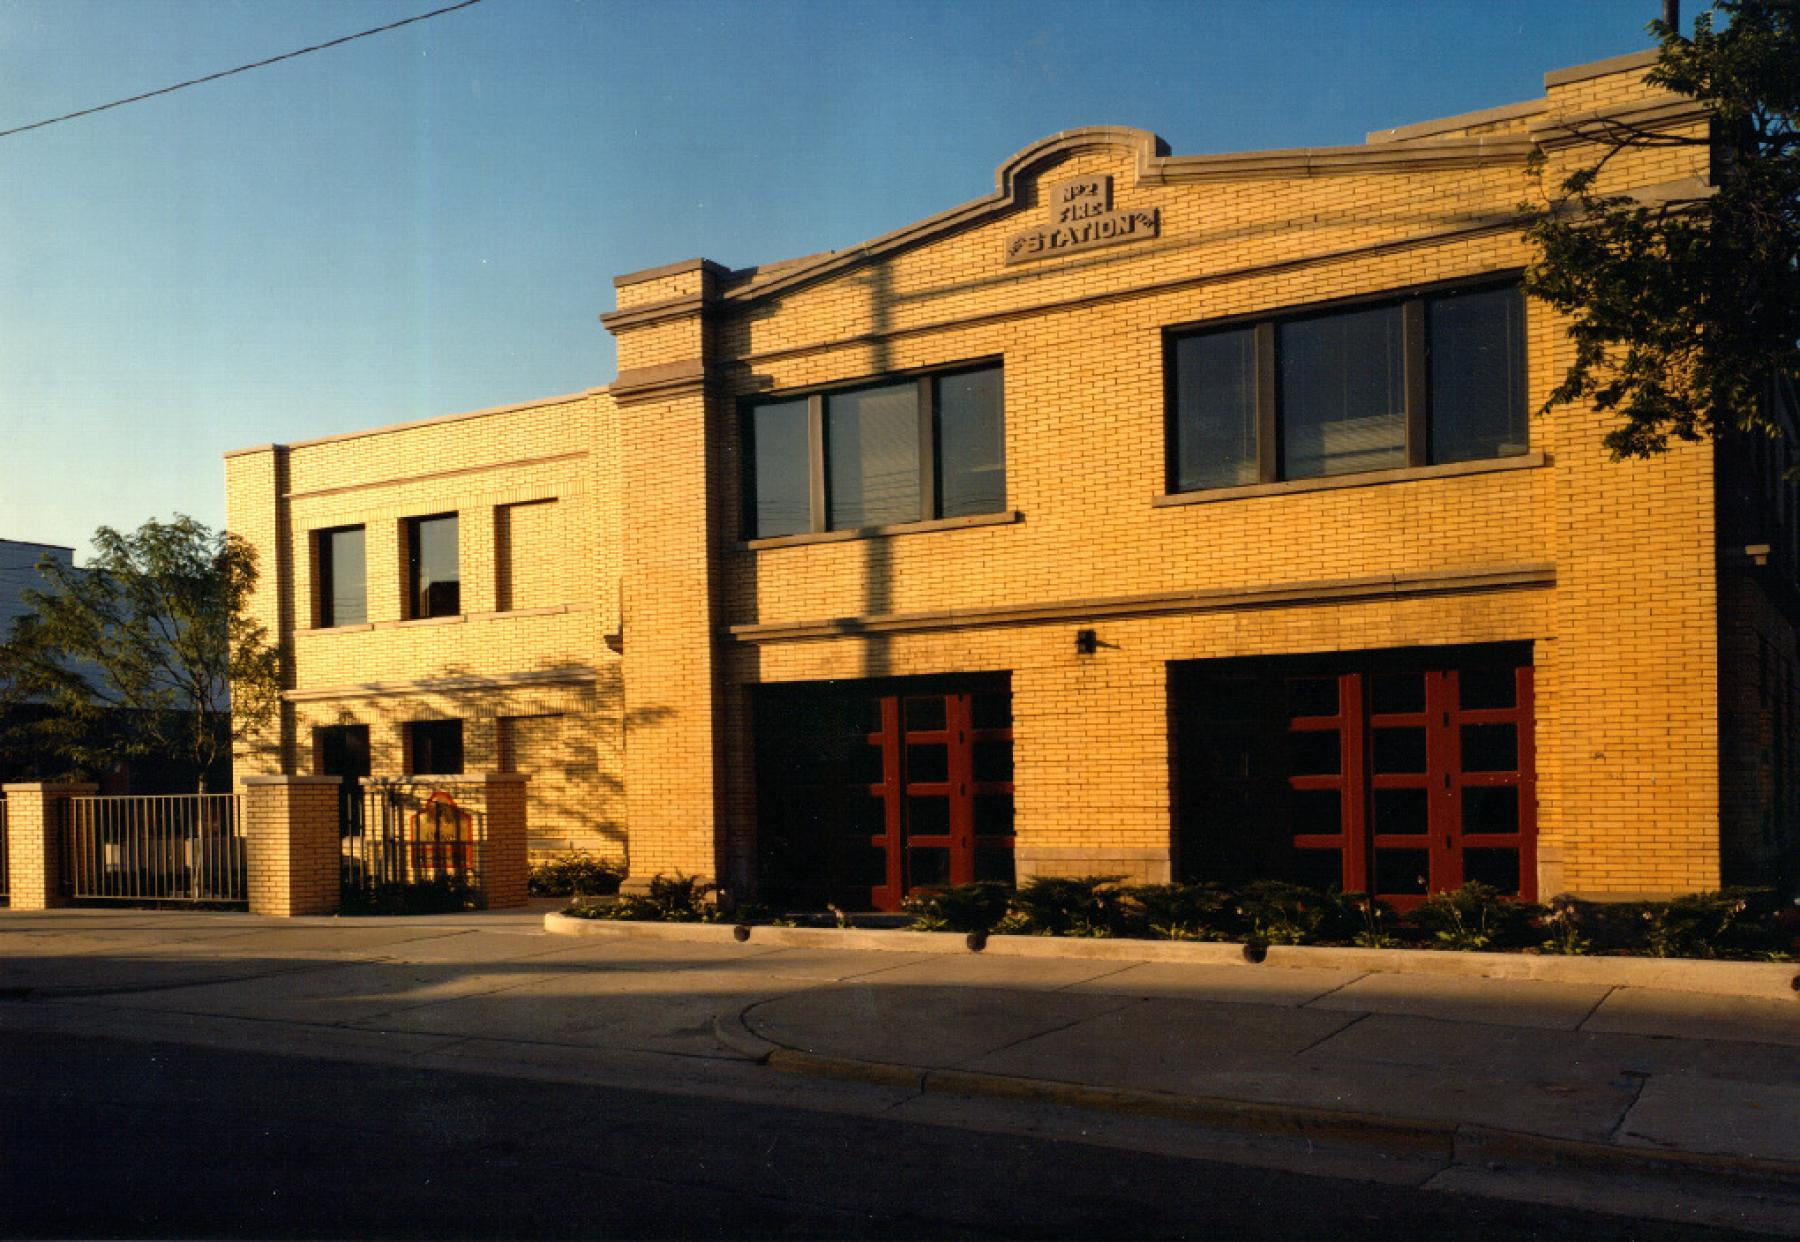 ULI Fire Station Number 2, Downtown Madison